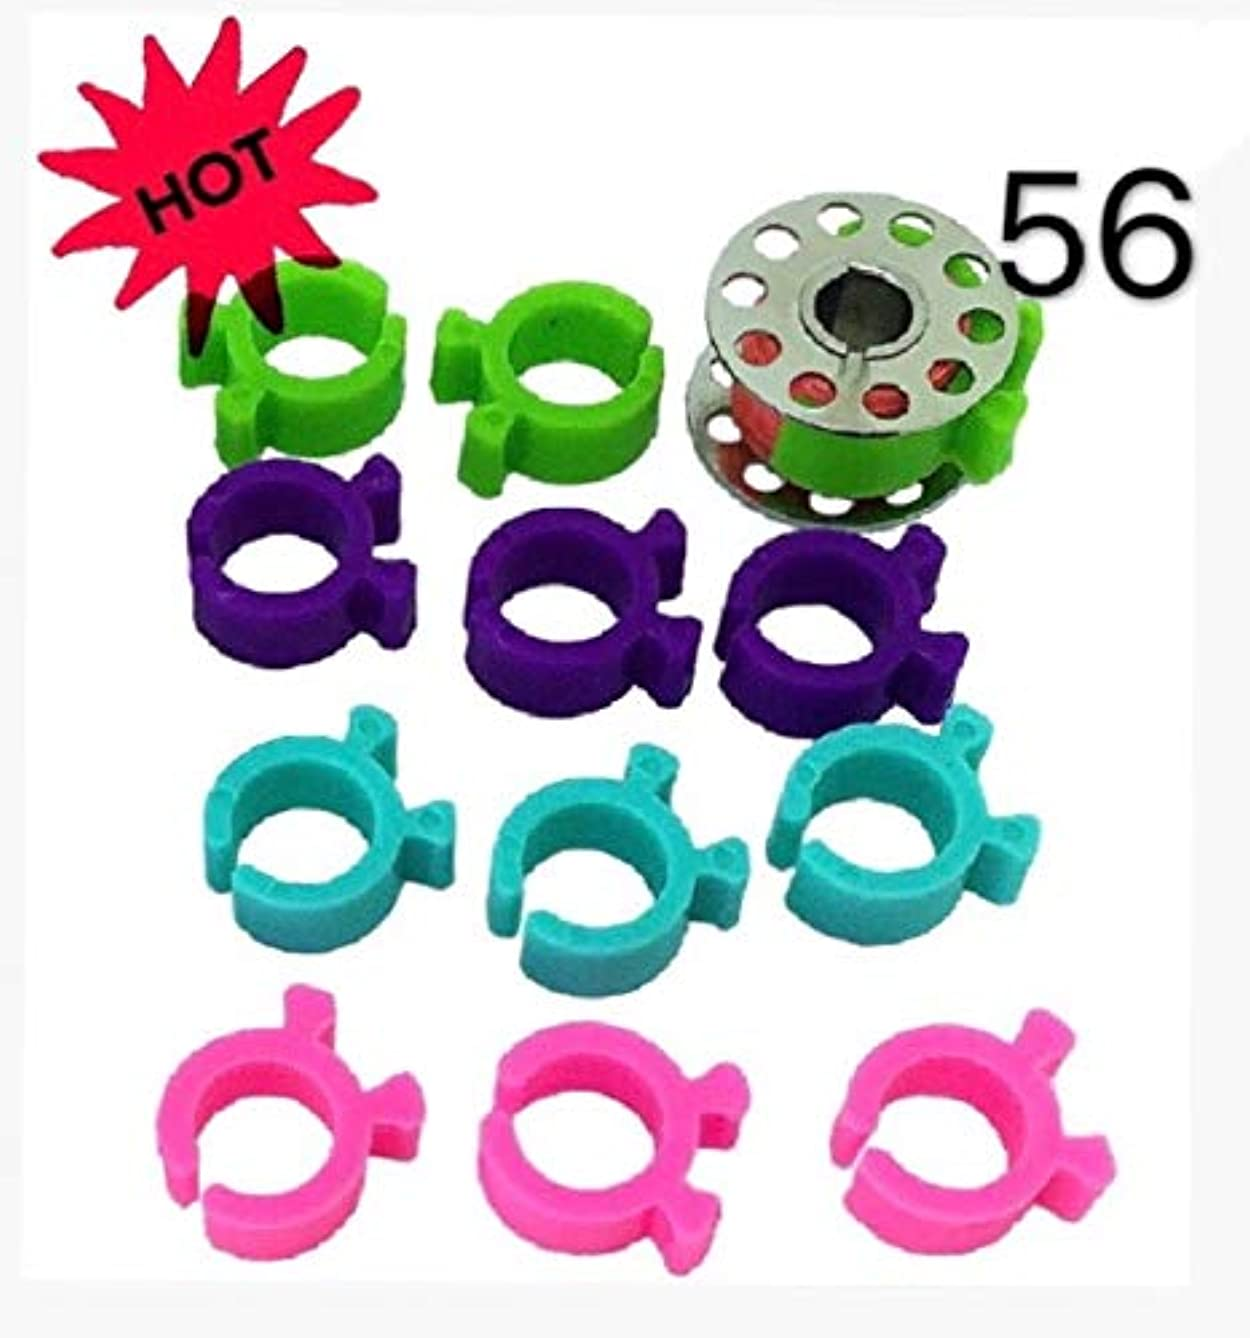 56 Pcs Bobbin Clips Holders Clamps Bobbin Buddies Great for Embroidery Quilting and Sewing Thread Sewing Machine PeavyTailor